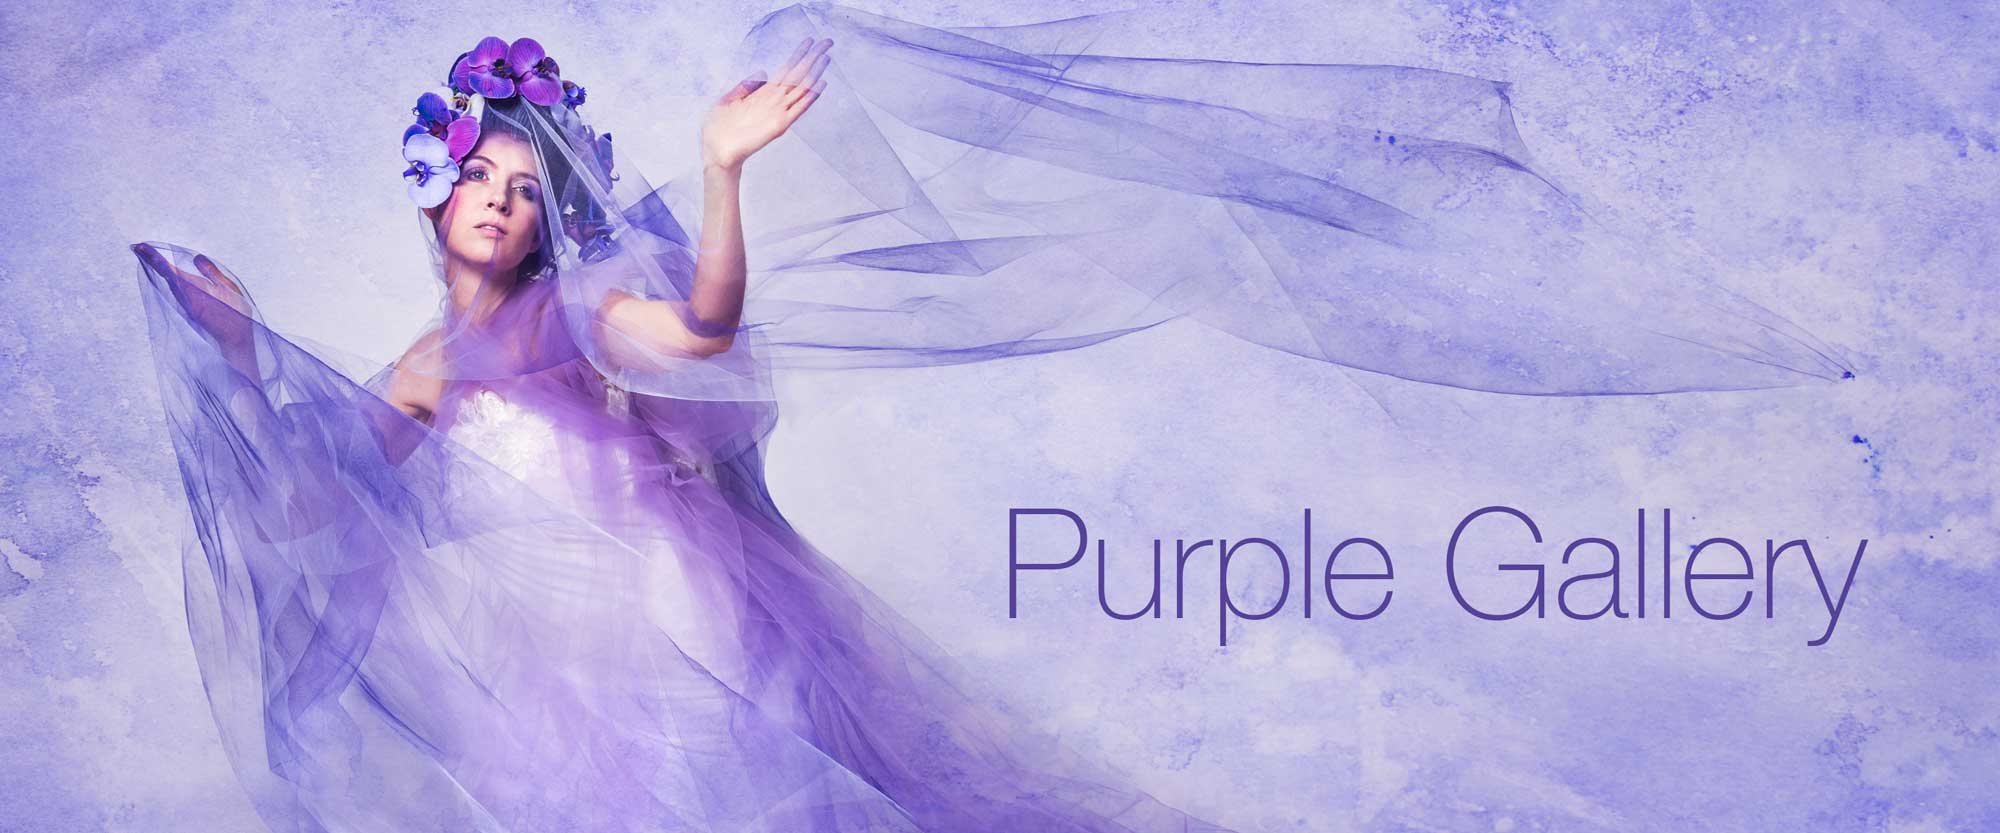 Laüra Hollick's Purple Gallery